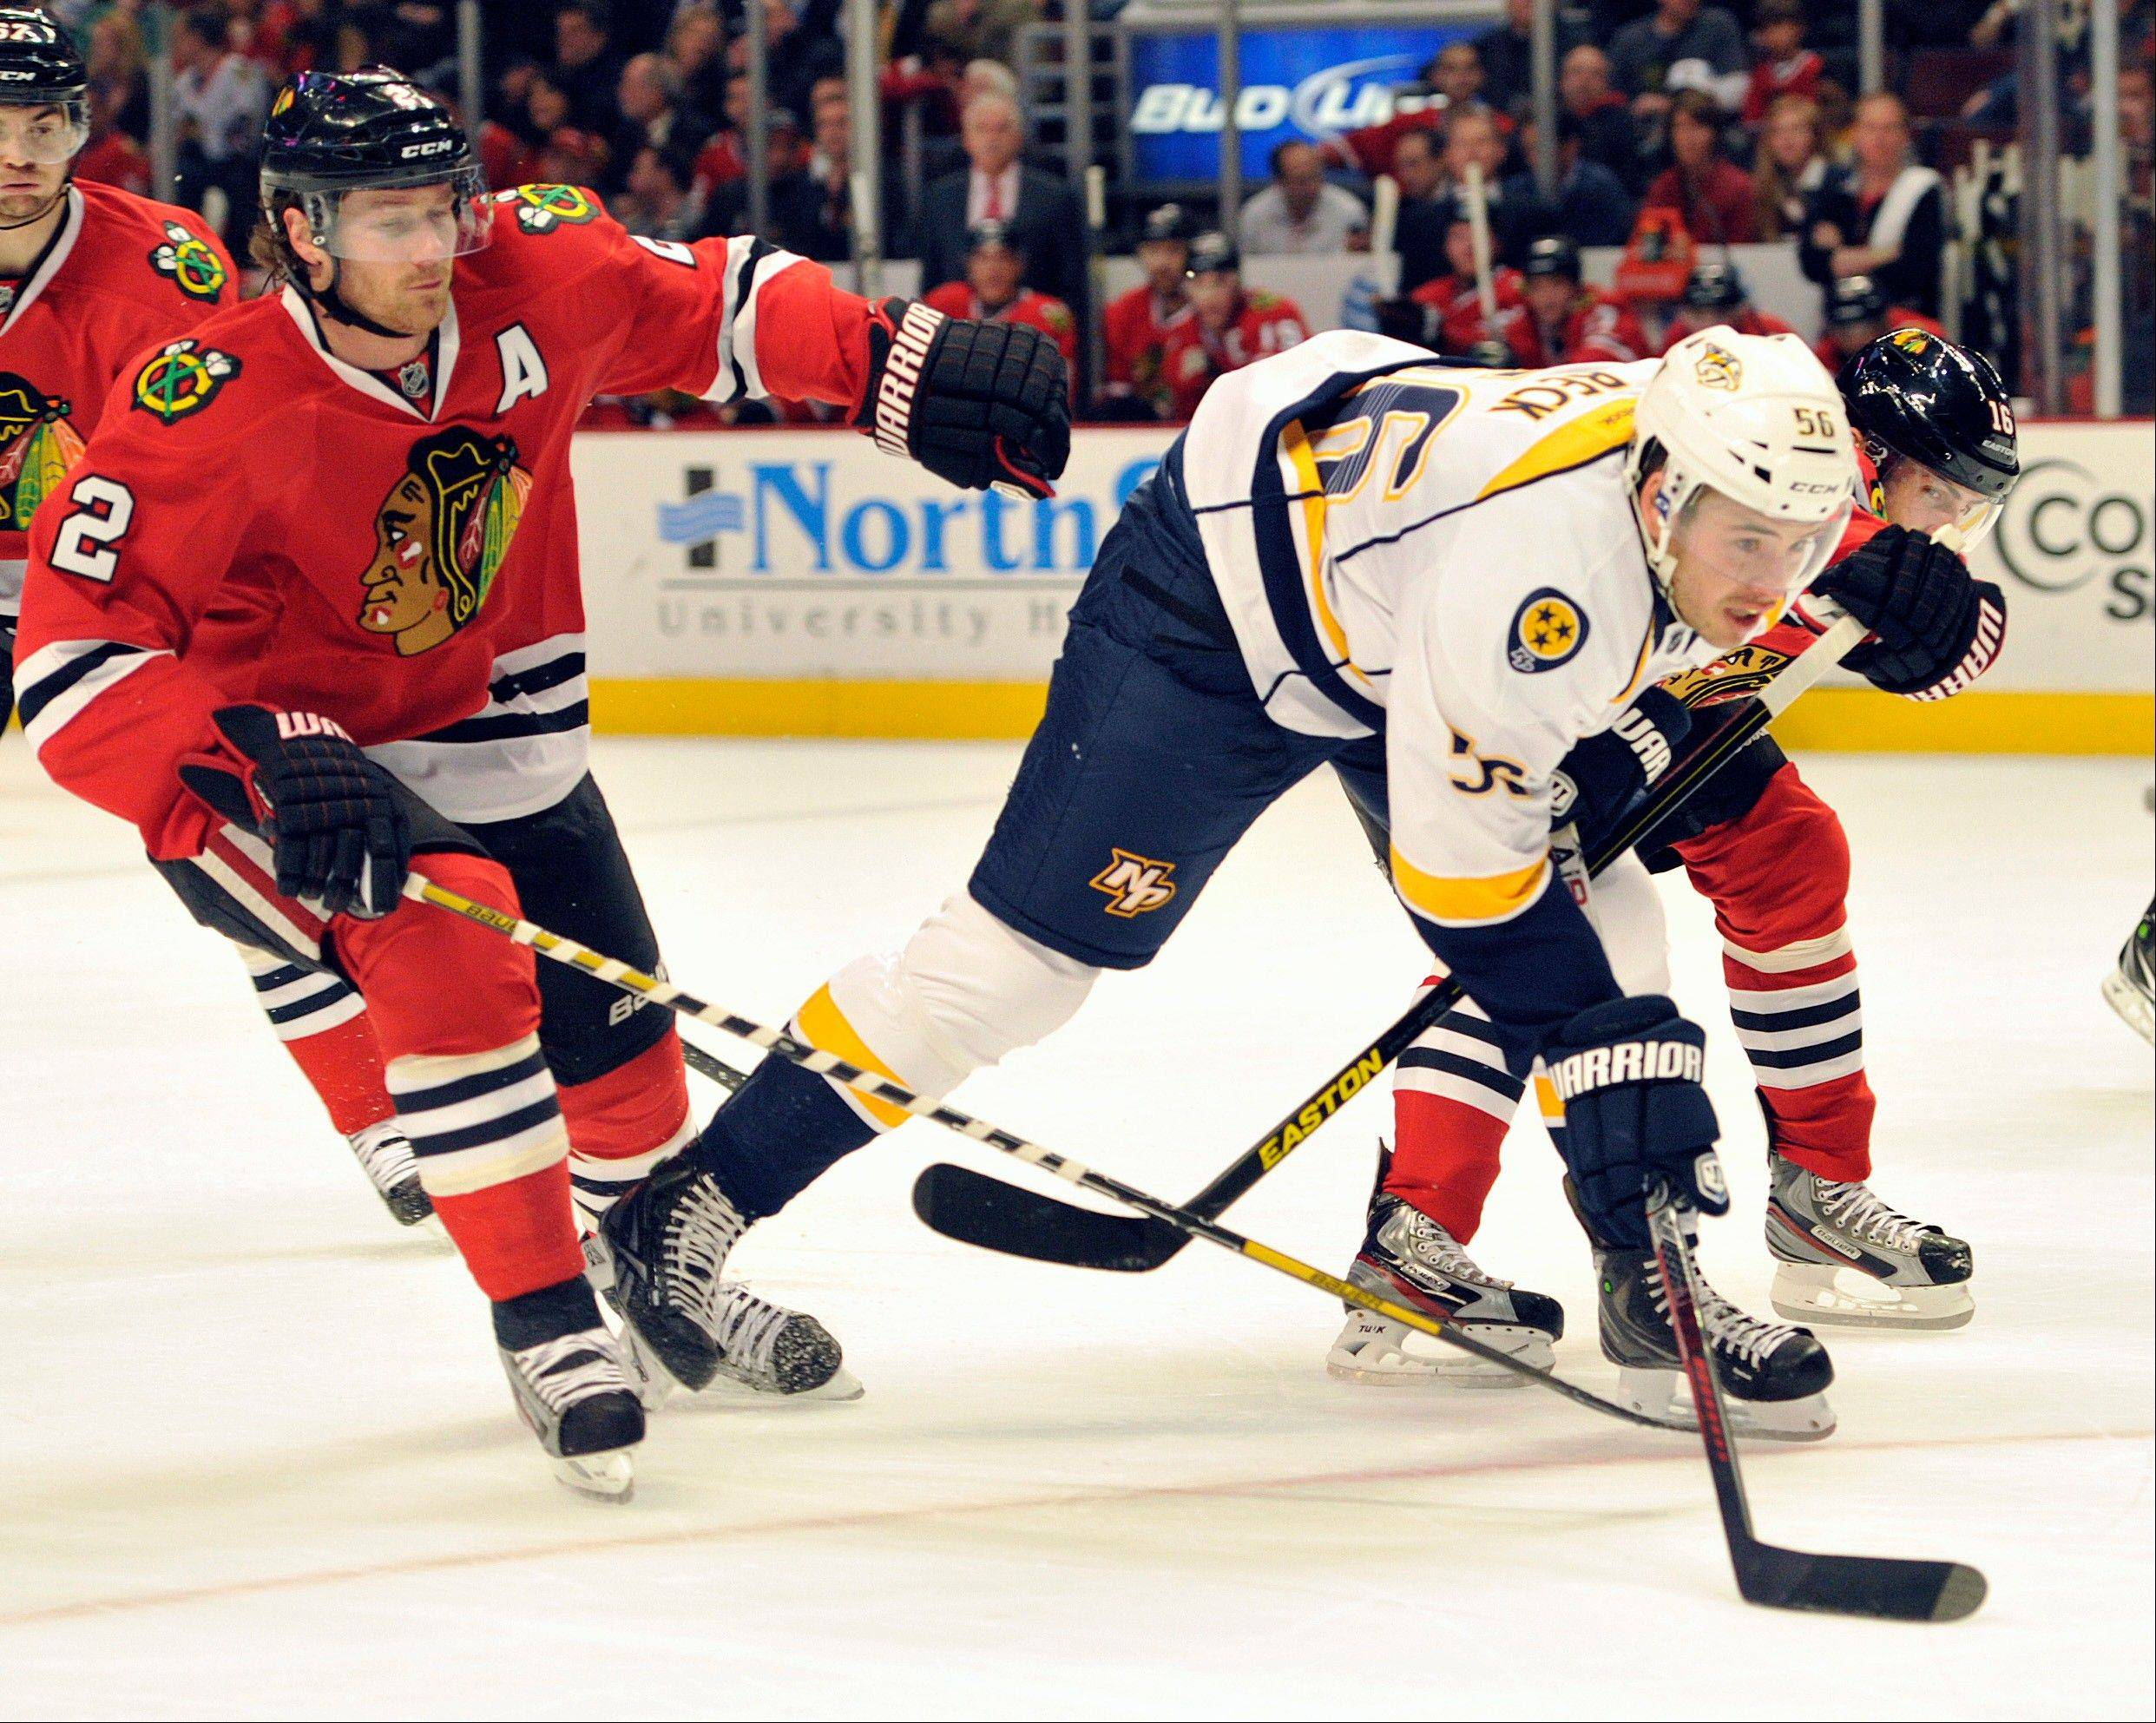 Chicago Blackhawks' Duncan Keith (2) checks the Nashville Predators' Taylor Beck as he reaches for the puck during the first period of an NHL hockey game Friday, April 19, 2013, in Chicago.